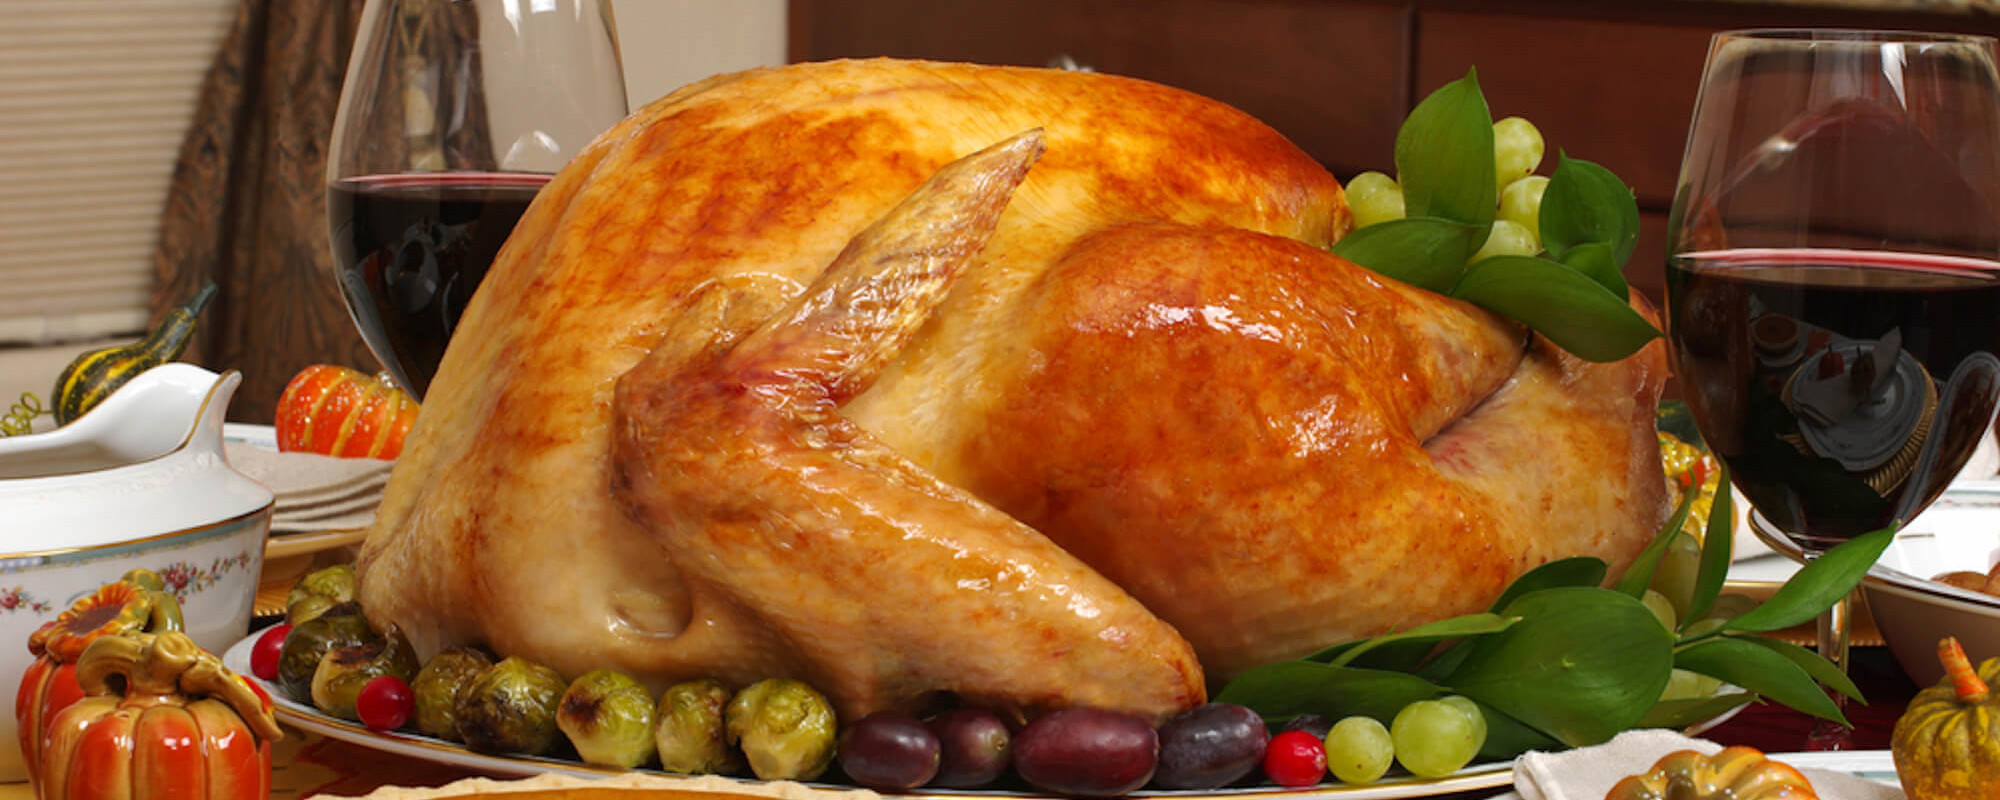 Cater Thanksgiving Dinner  Mawa's Kitchen Aspen Catering Private Chef Services In